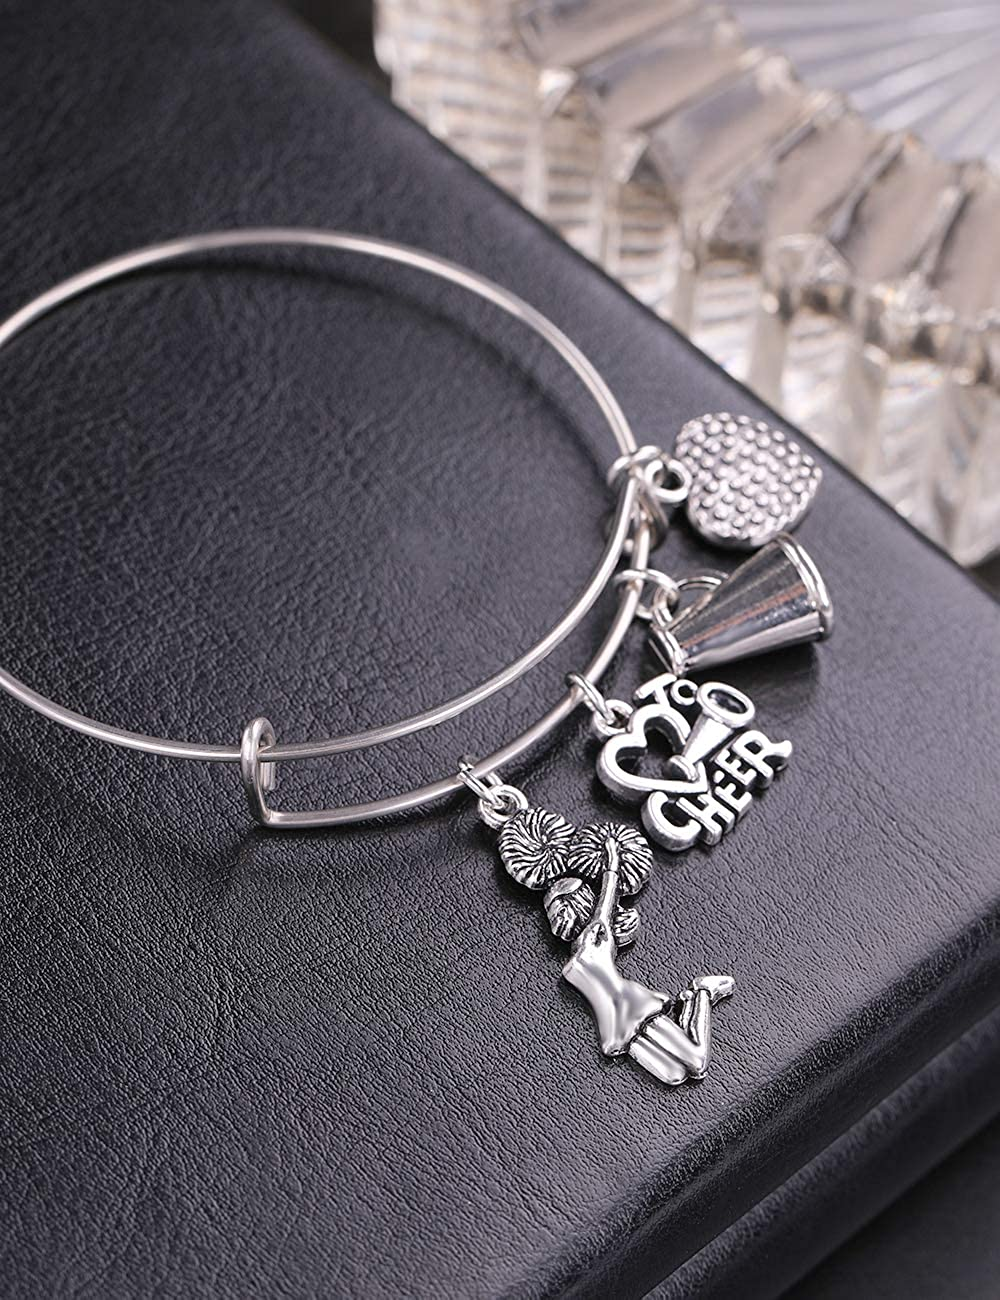 cooltime Cheerleading Heart Cheerleader Charms Bangle Bracelet for Cheer Team